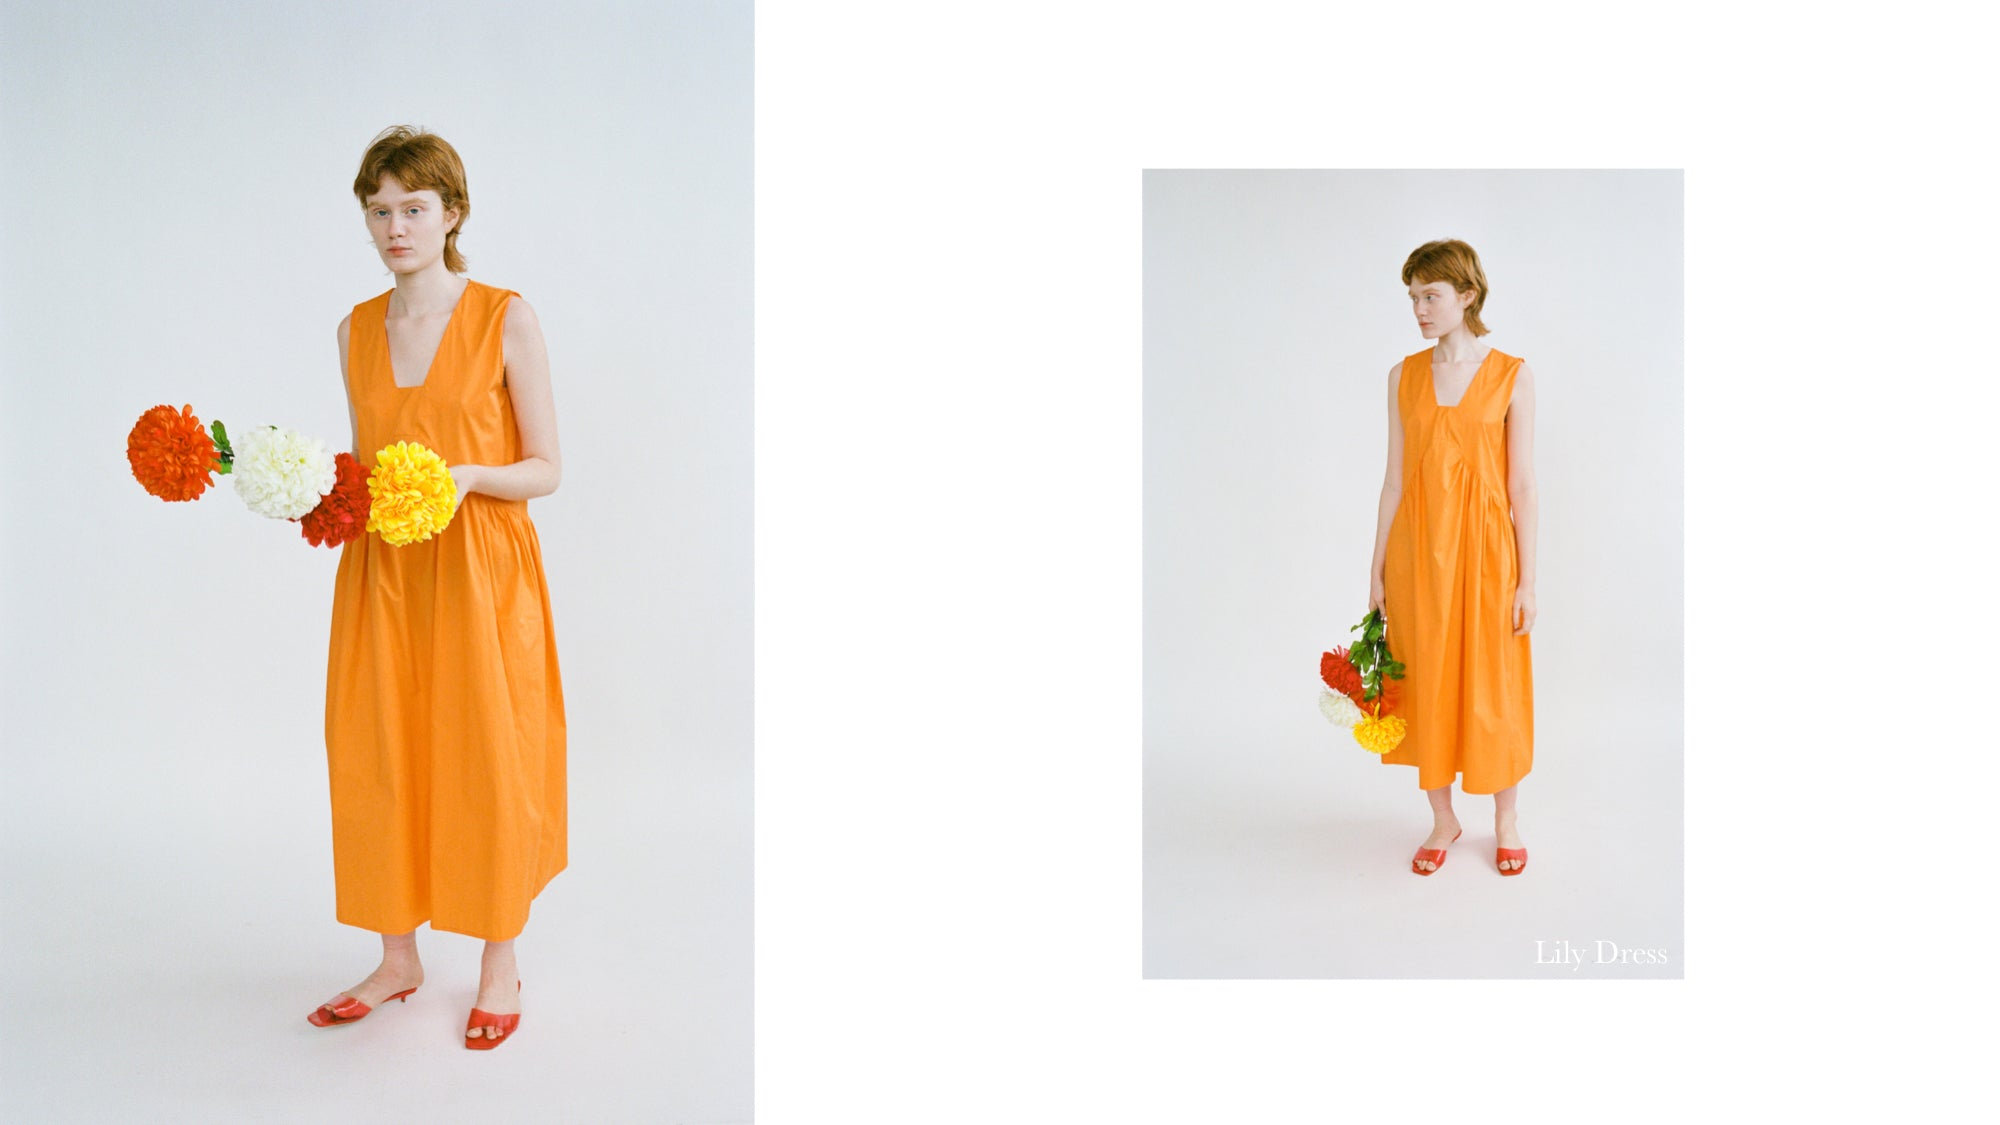 WRAY PF20 Lookbook featuring the Lily Dress in carrot orange poplin